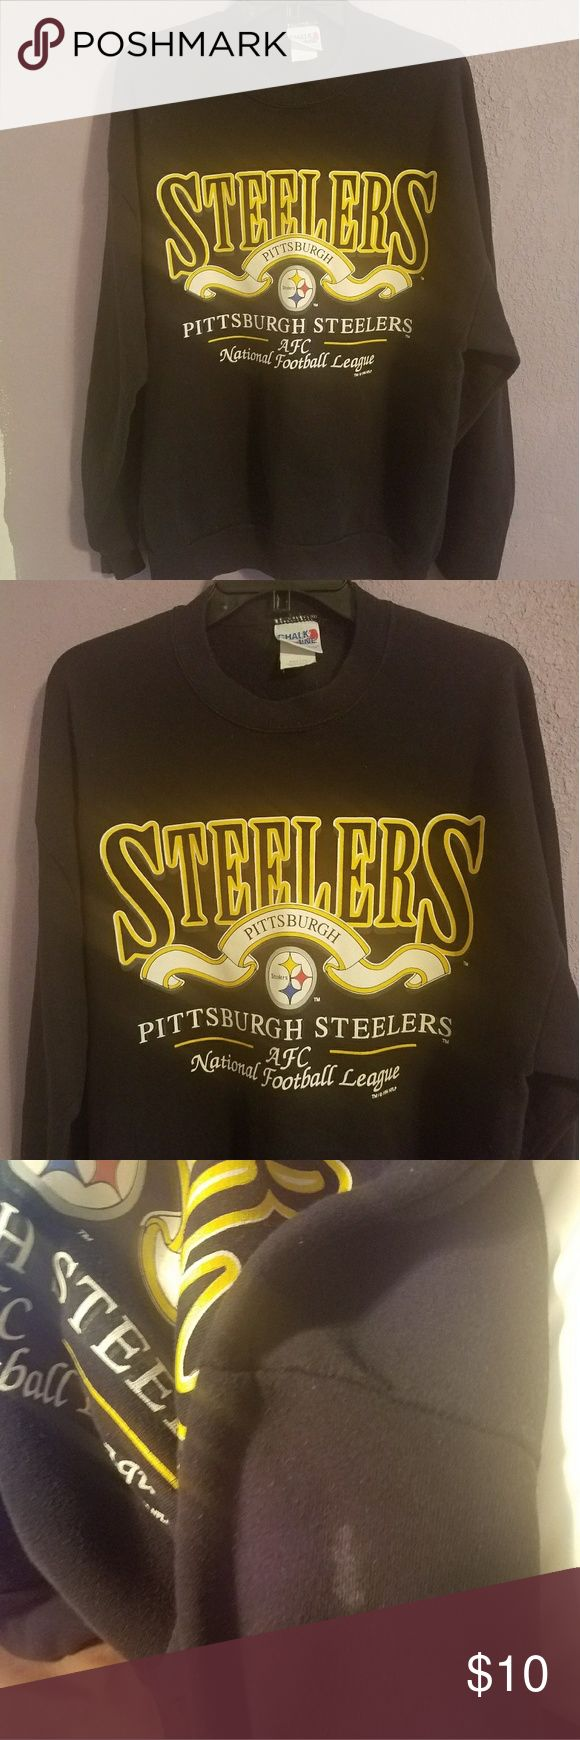 Vintage Steelers hoody Vintage men's hoody. In good used condition. Small stain in picture shown Vintage Shirts Sweatshirts & Hoodies